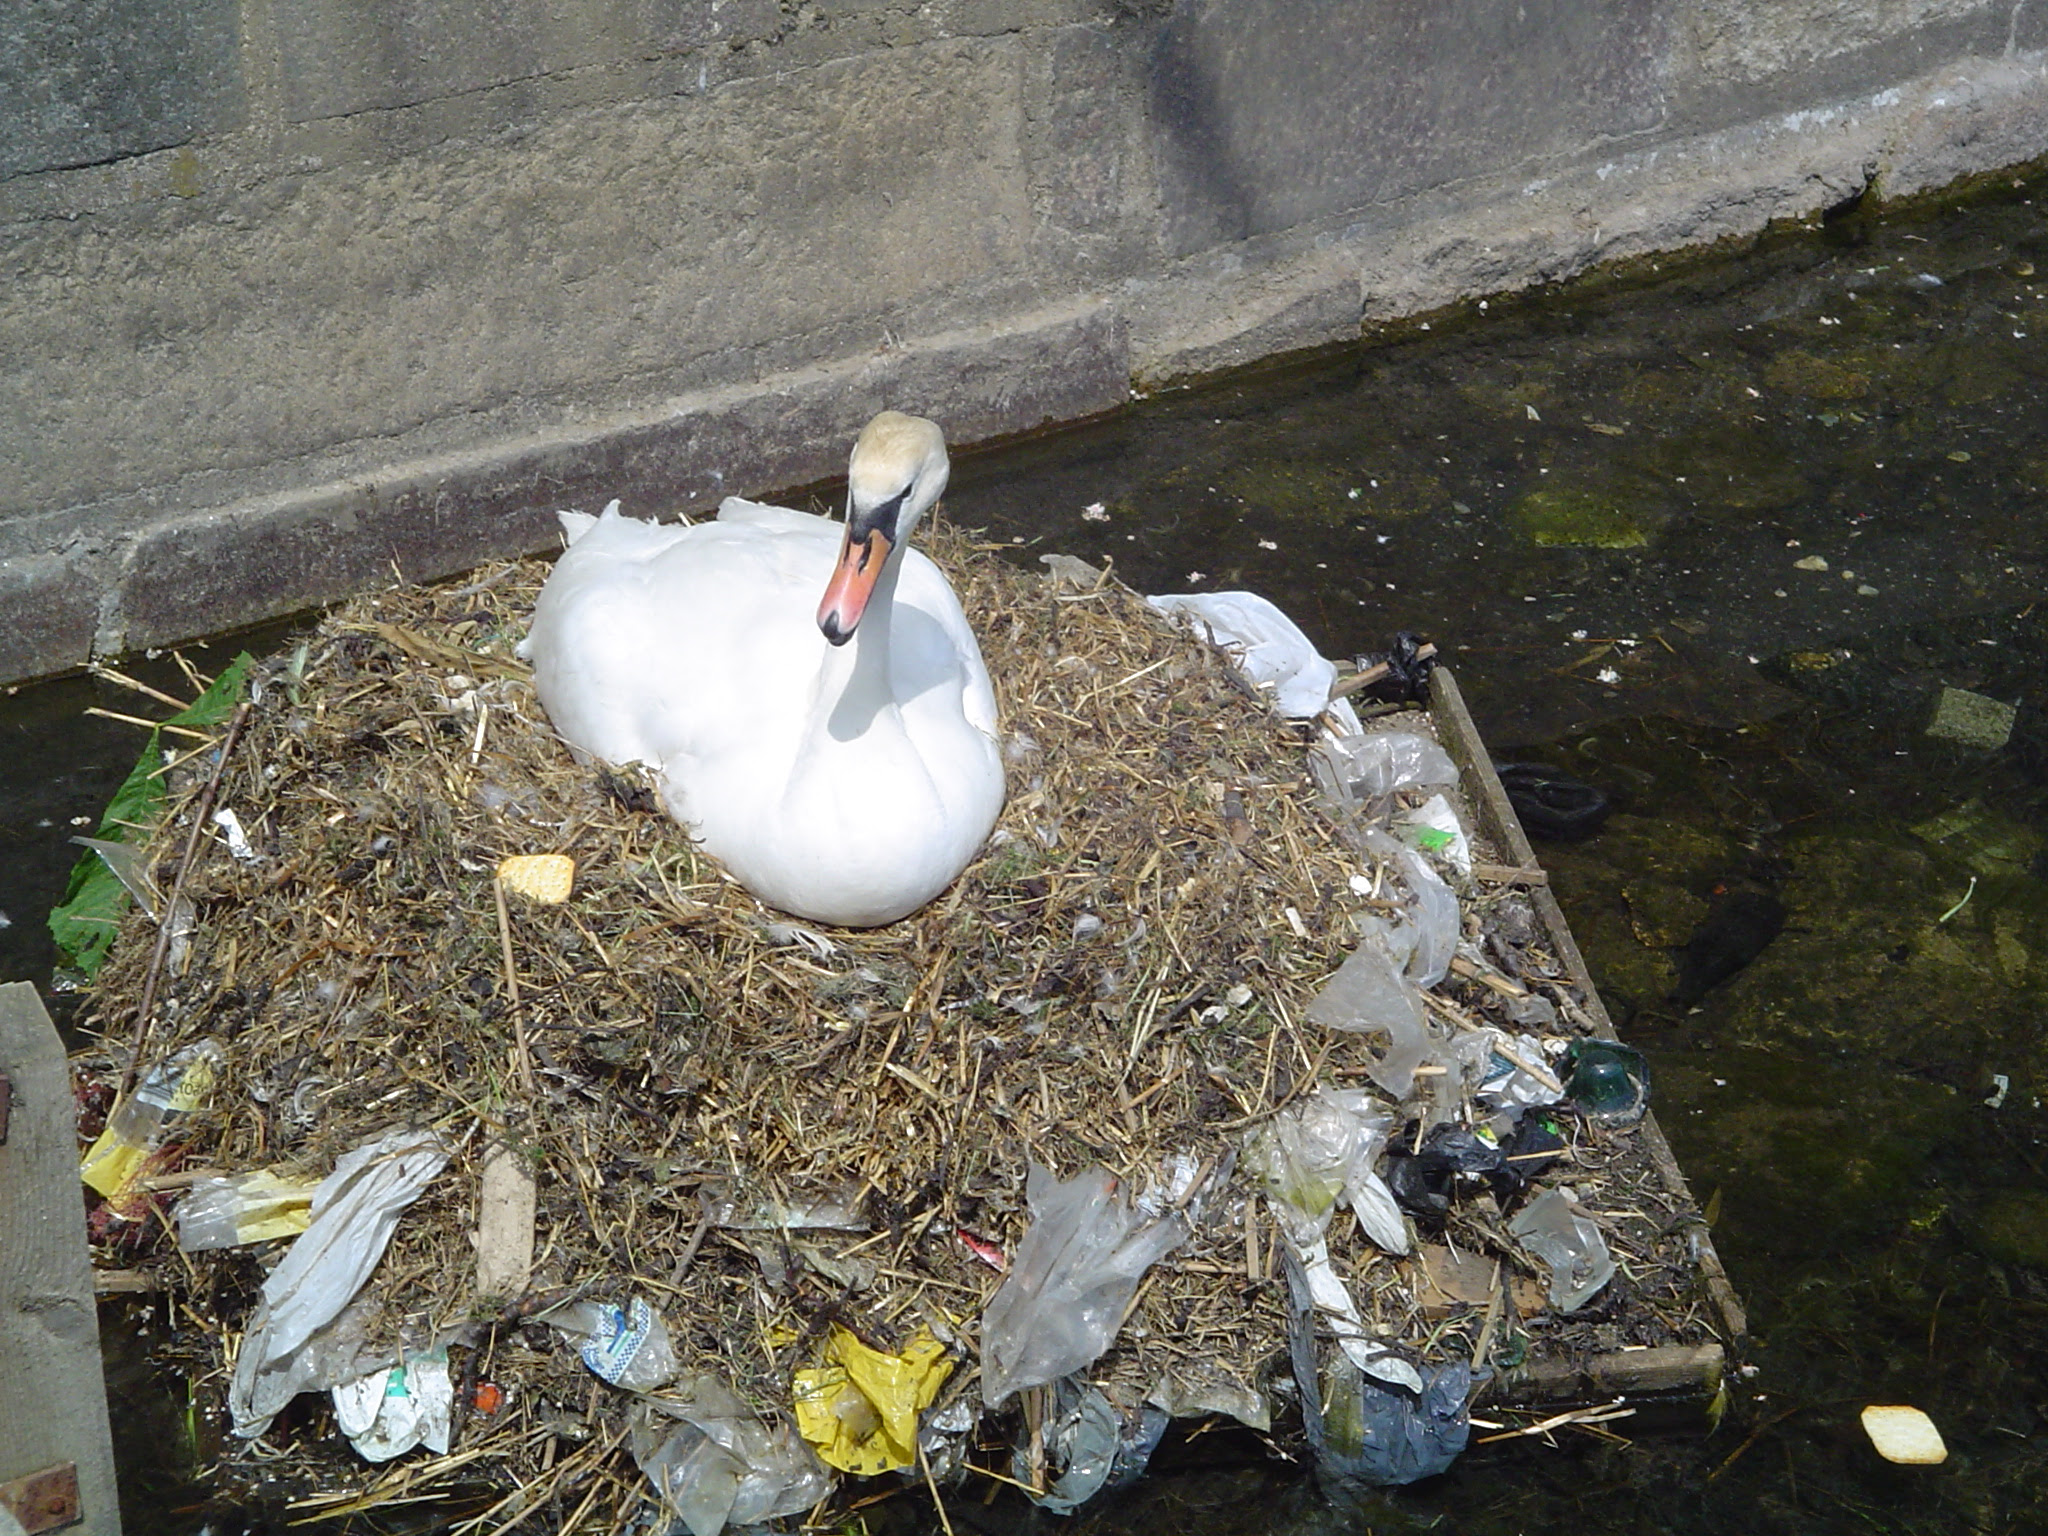 http://upload.wikimedia.org/wikipedia/commons/4/47/Pollution_swan.jpg